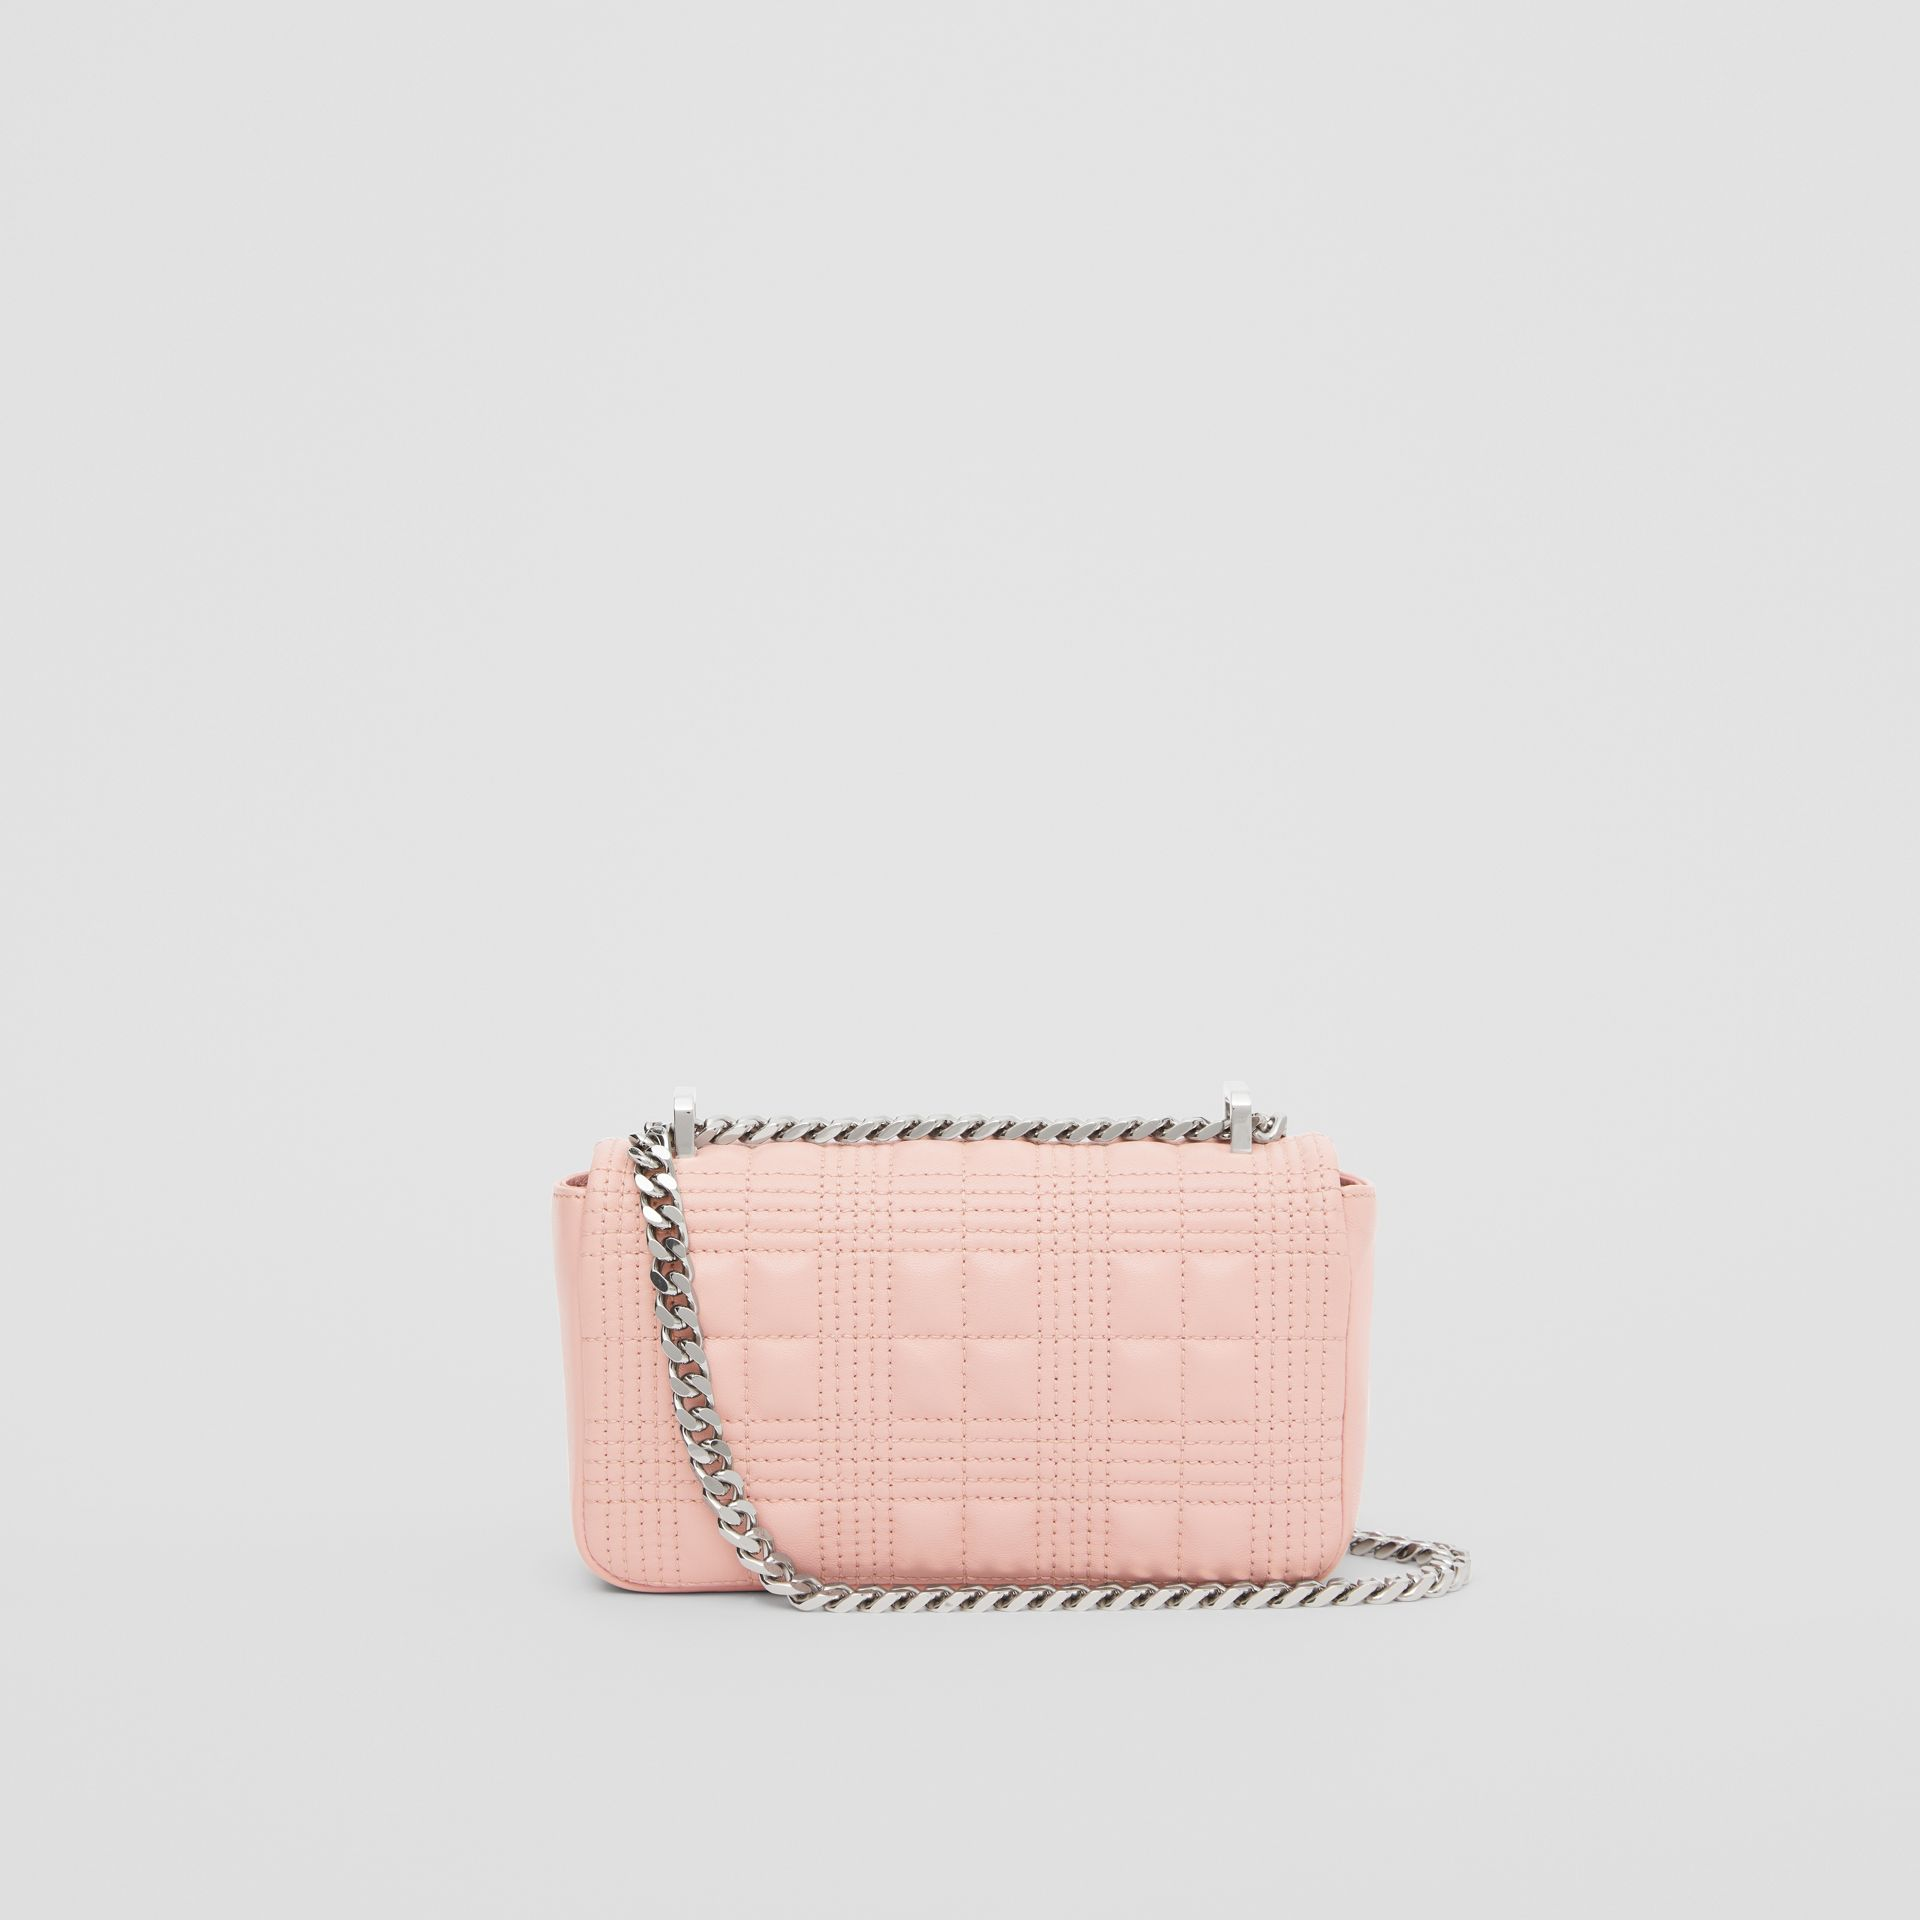 Mini Quilted Lambskin Lola Bag in Blush Pink - Women | Burberry - gallery image 7